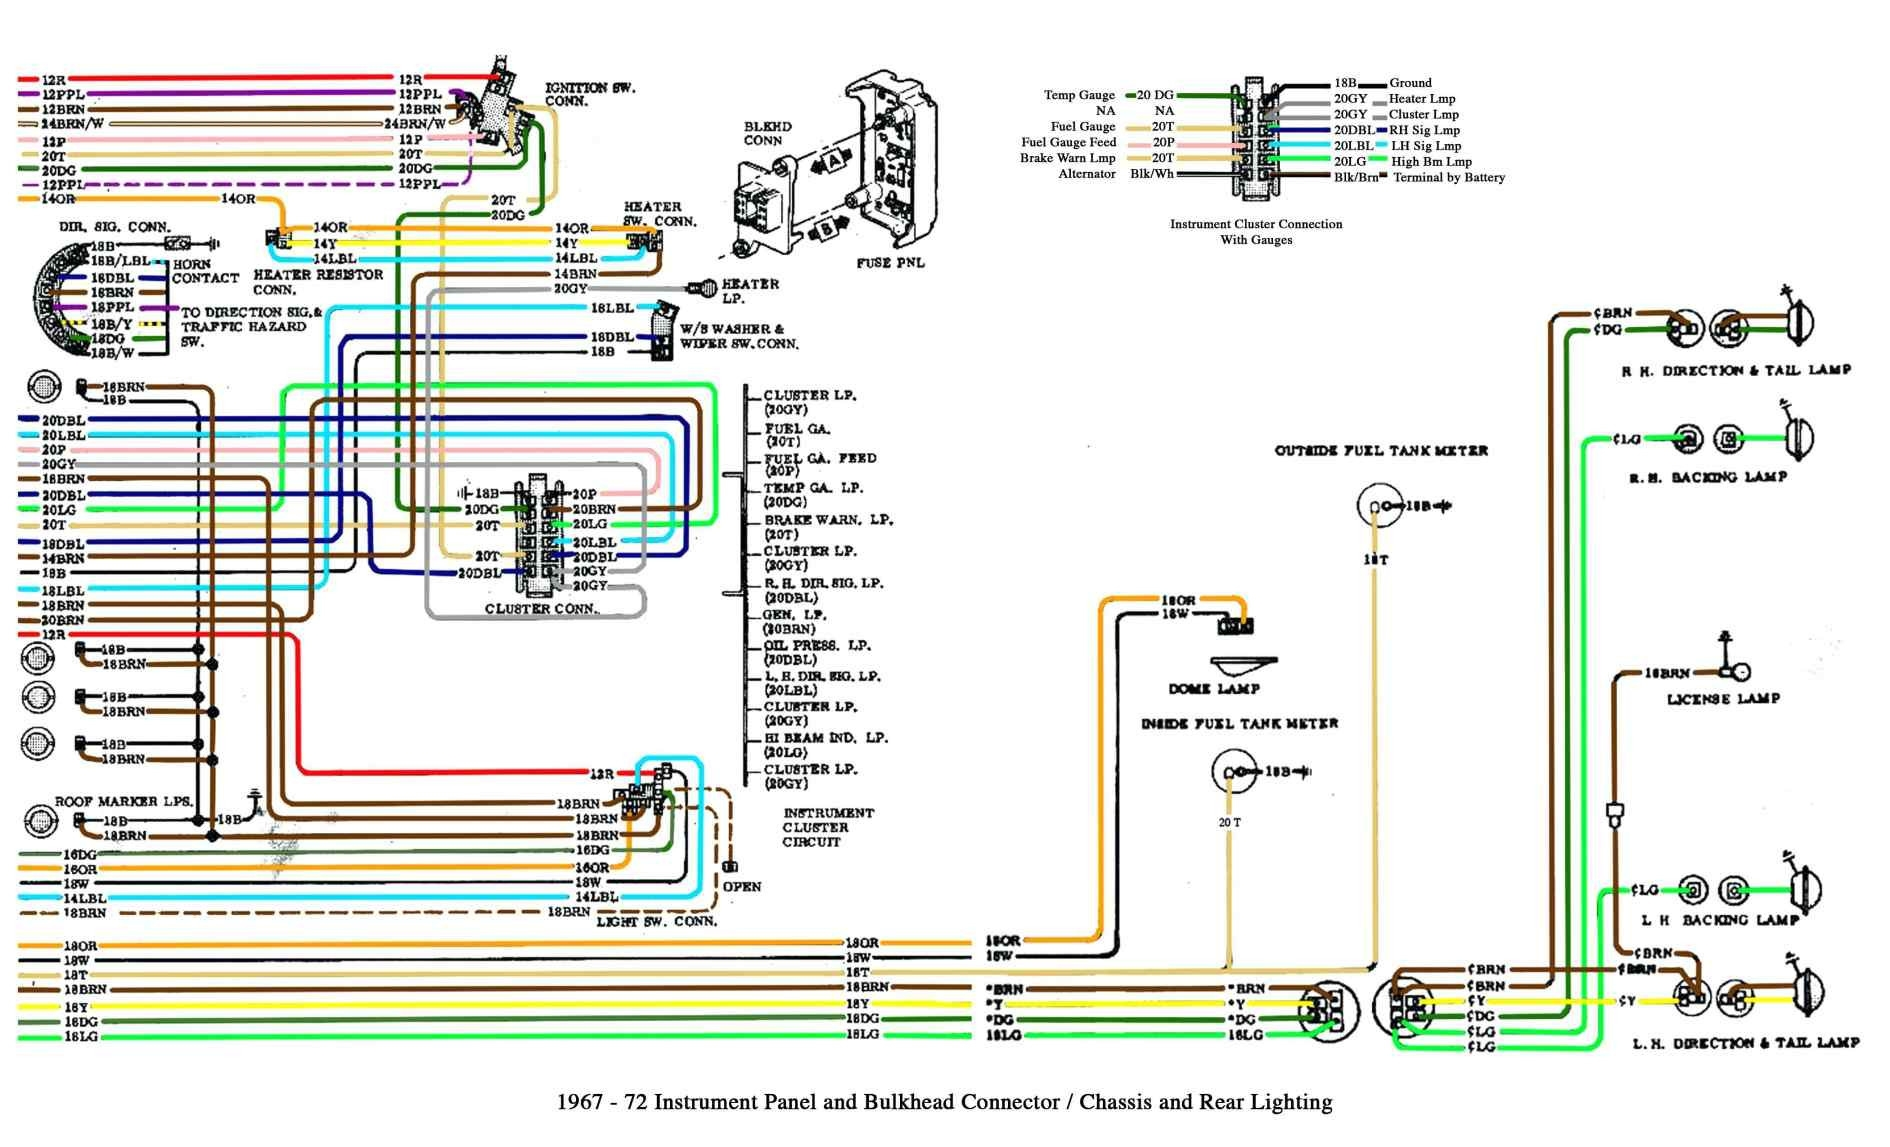 2004 Chevy    Impala       Radio       Wiring       Diagram      Free    Wiring       Diagram